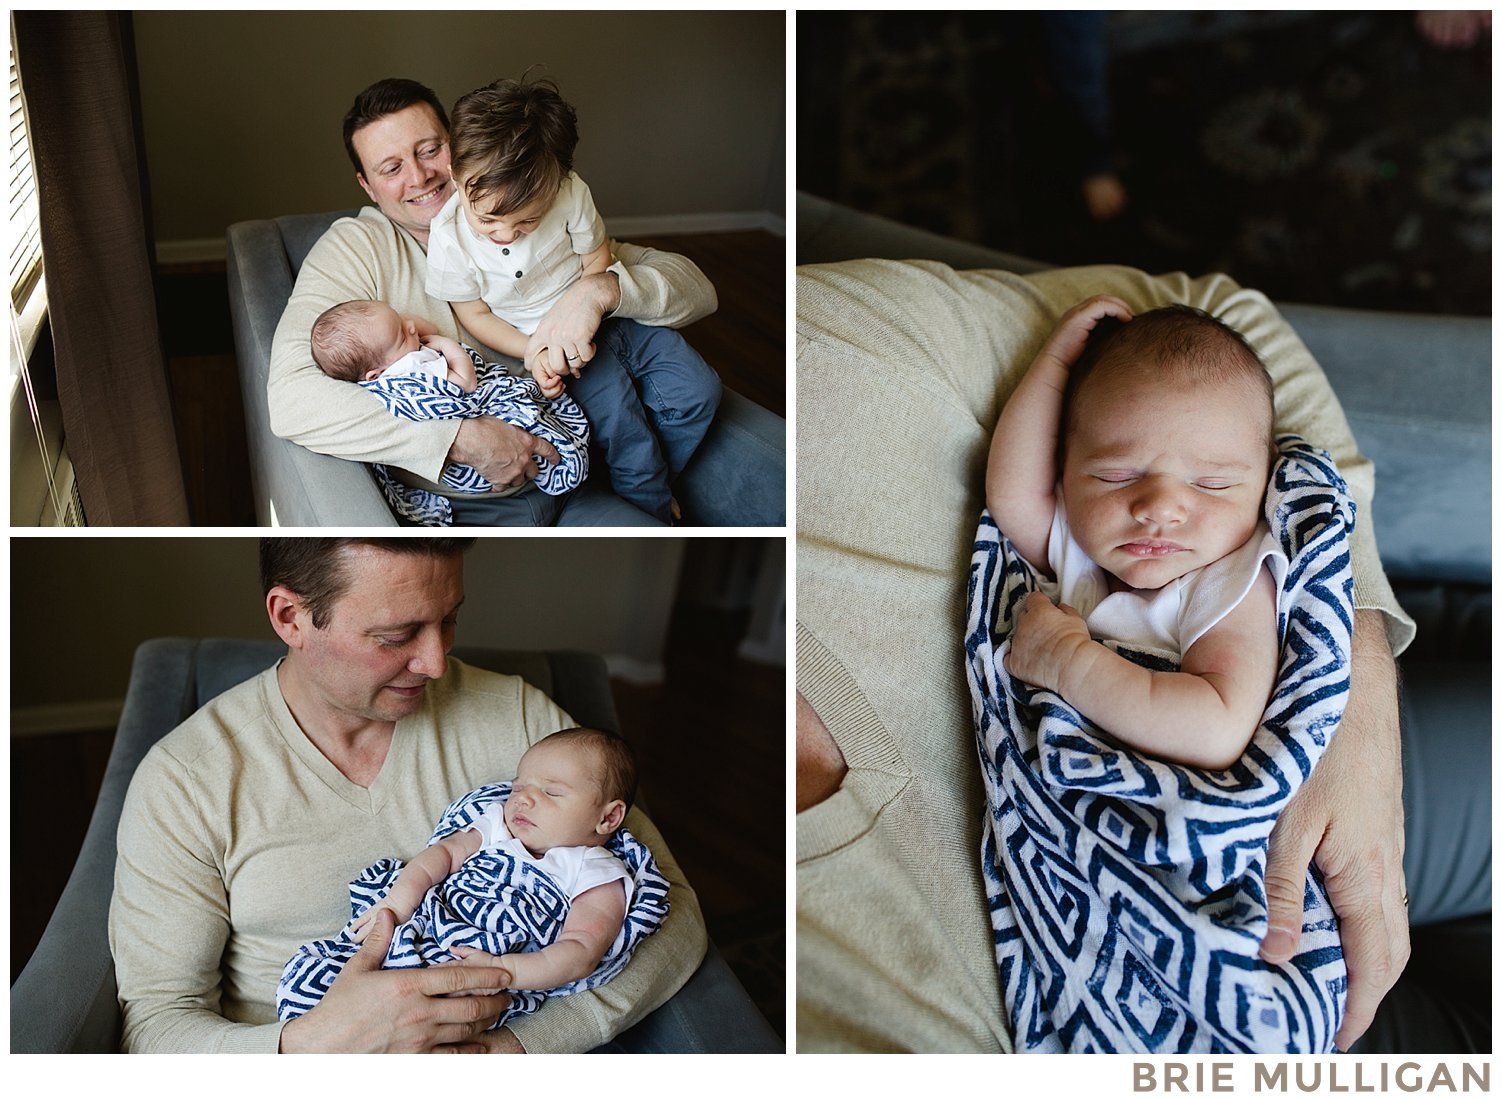 Brie-Mulligan-Family-and-Newborn-Photographer-Montclair-New-Jersey-Northern-NJ-Essex-County-and-NYC_0194.jpg